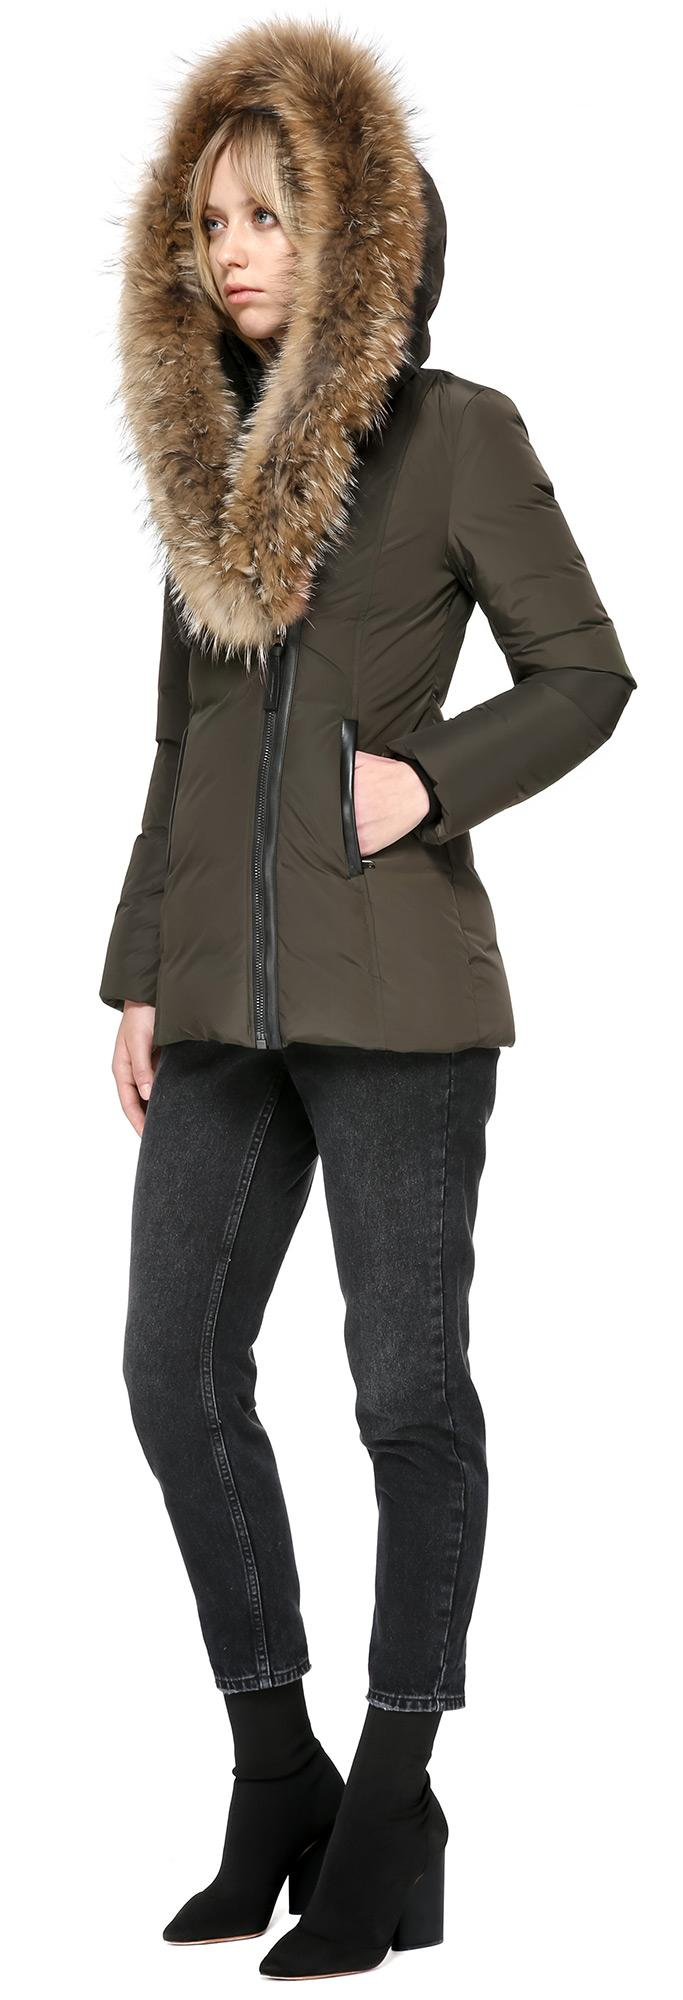 1c61cb364b18 Lyst - Mackage Adali Fitted Winter Down Coat With Fur Hood In Army ...